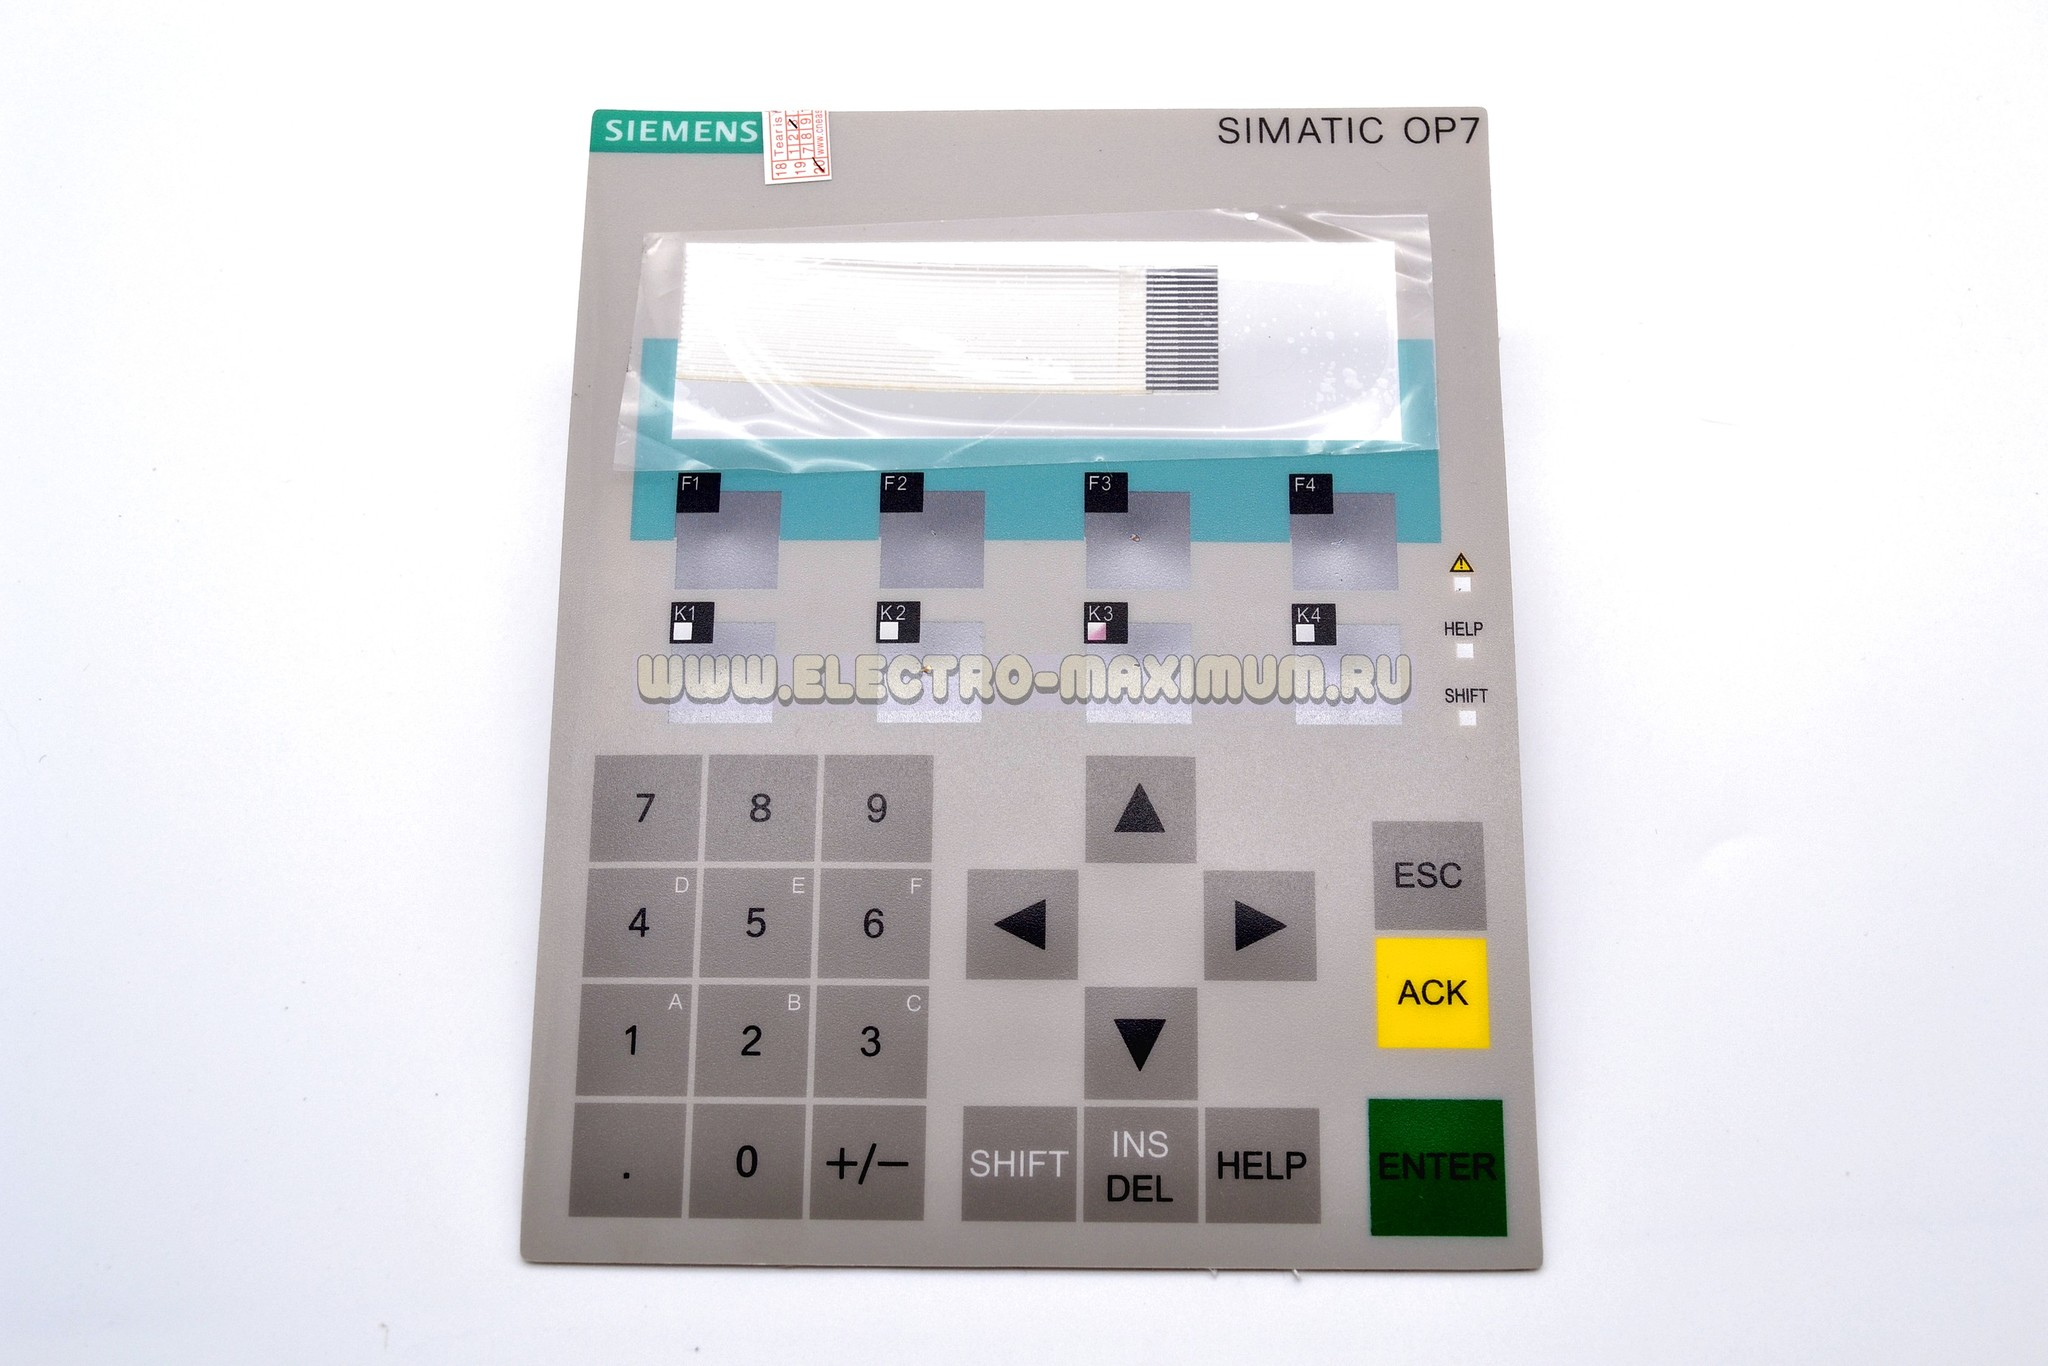 KEYBOARD FOR OP7 6AV3607-1JC20-0AX1 6AV3607-1JC00-0AX1 SIMATIC